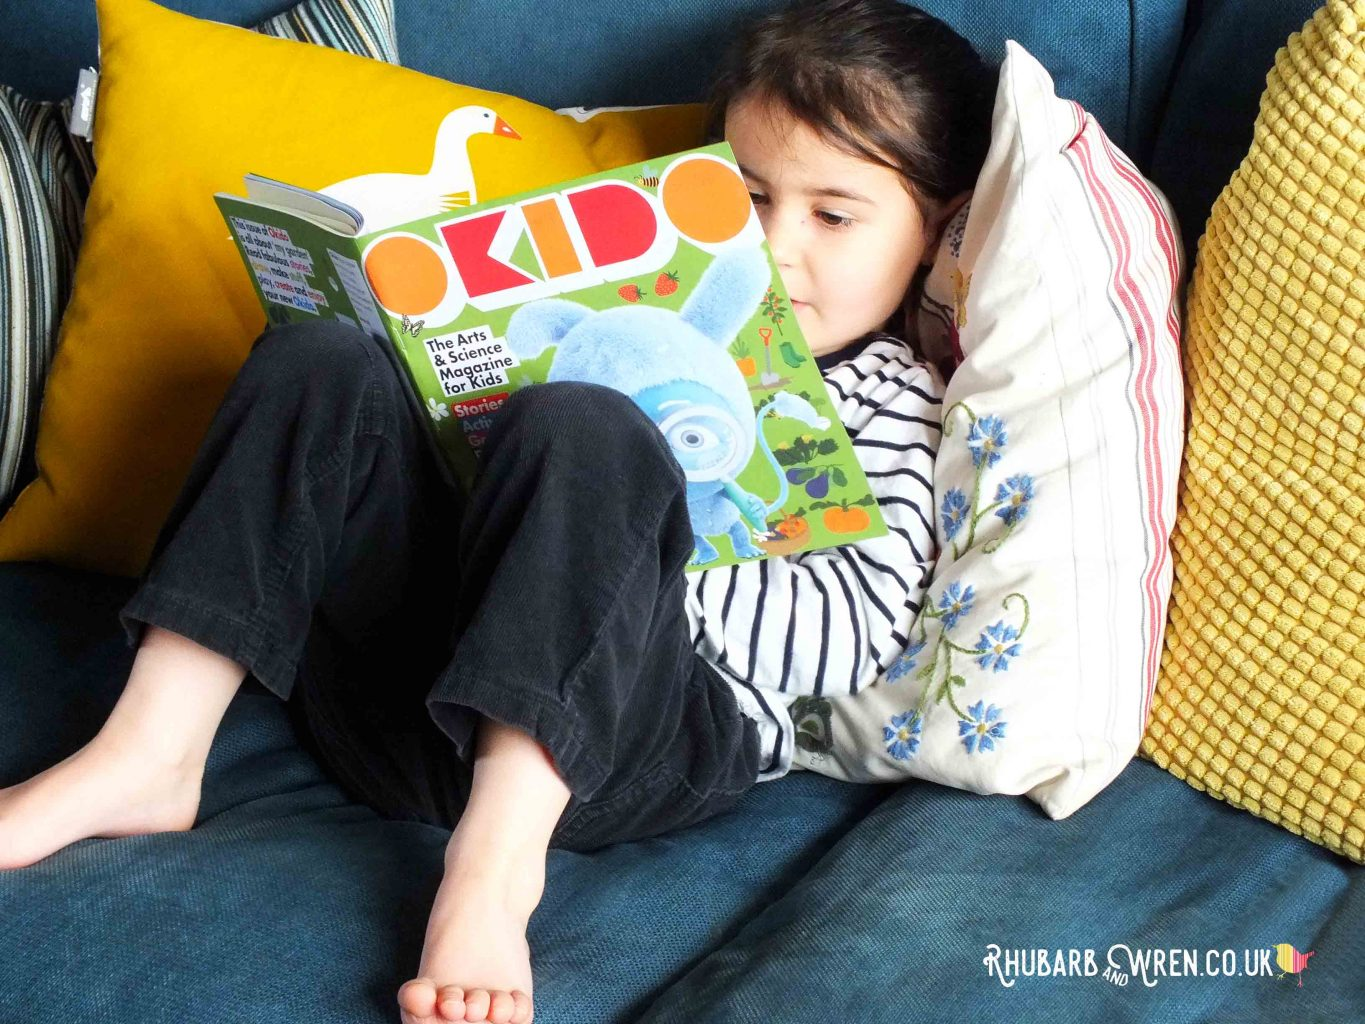 Preschool girl reading Okido magazine on blue sofa